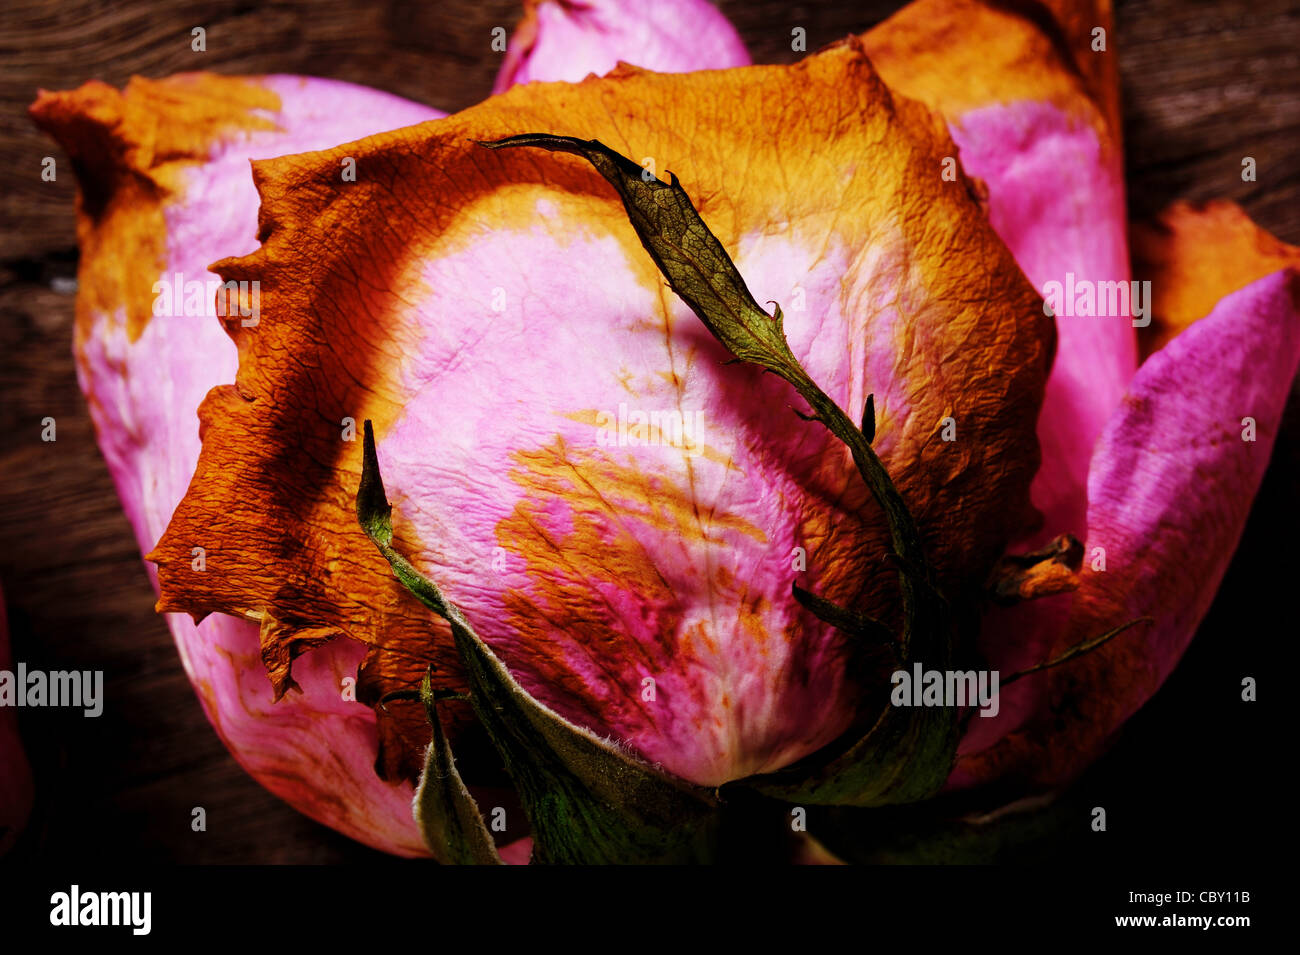 Dried pink roses on a wooden floor - Stock Image